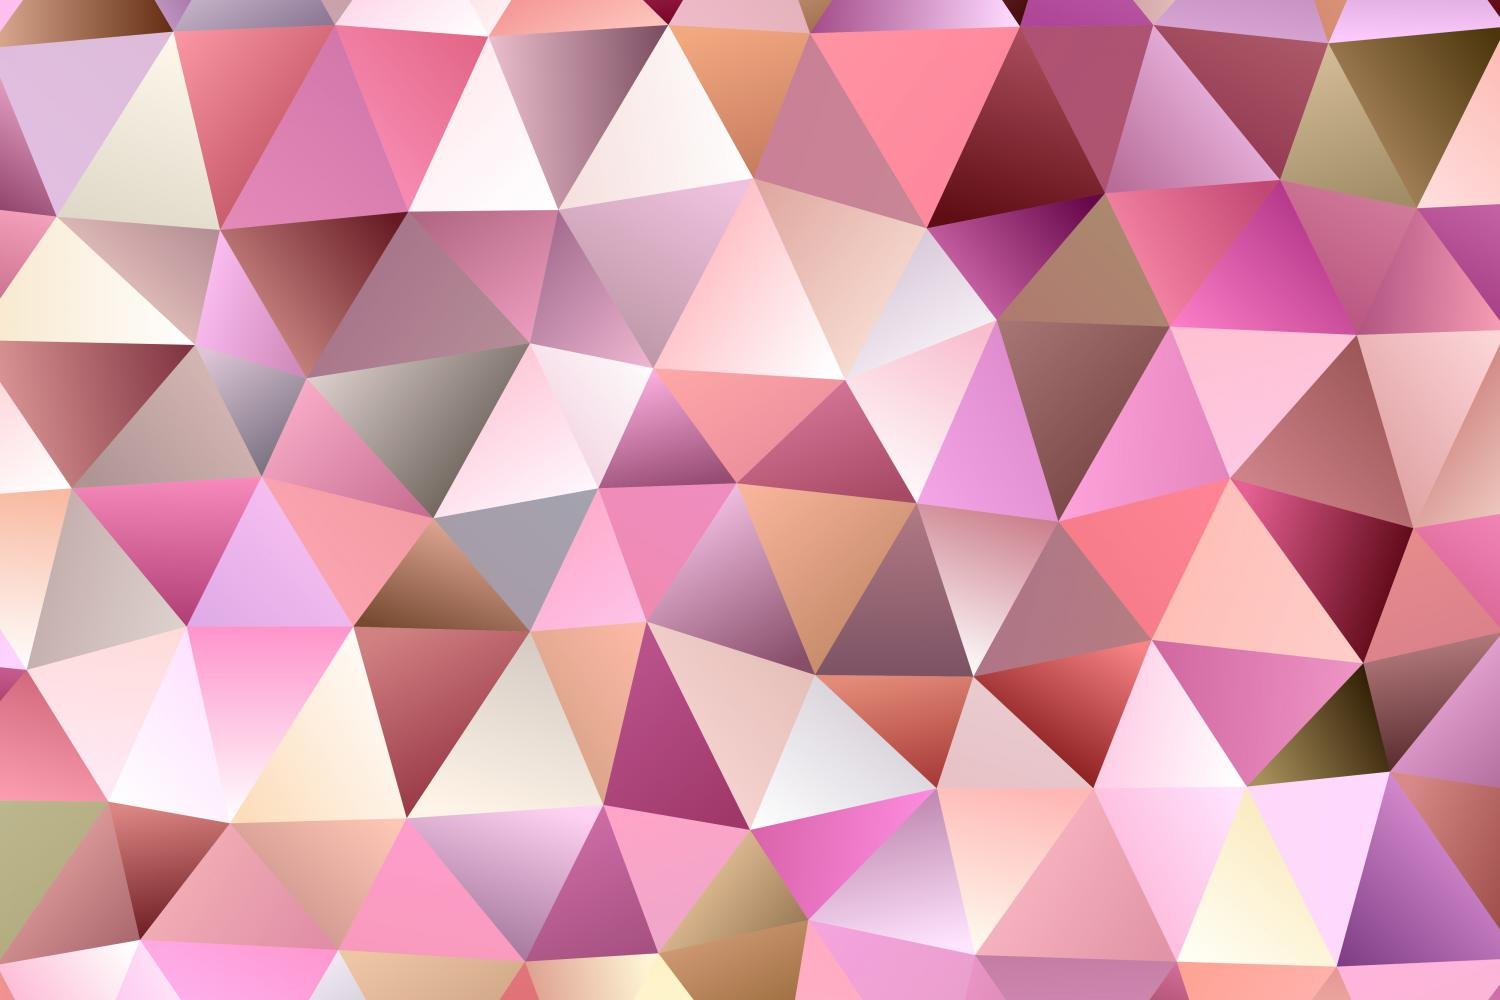 Download Free Chaotic Triangle Background Graphic By Davidzydd Creative Fabrica for Cricut Explore, Silhouette and other cutting machines.